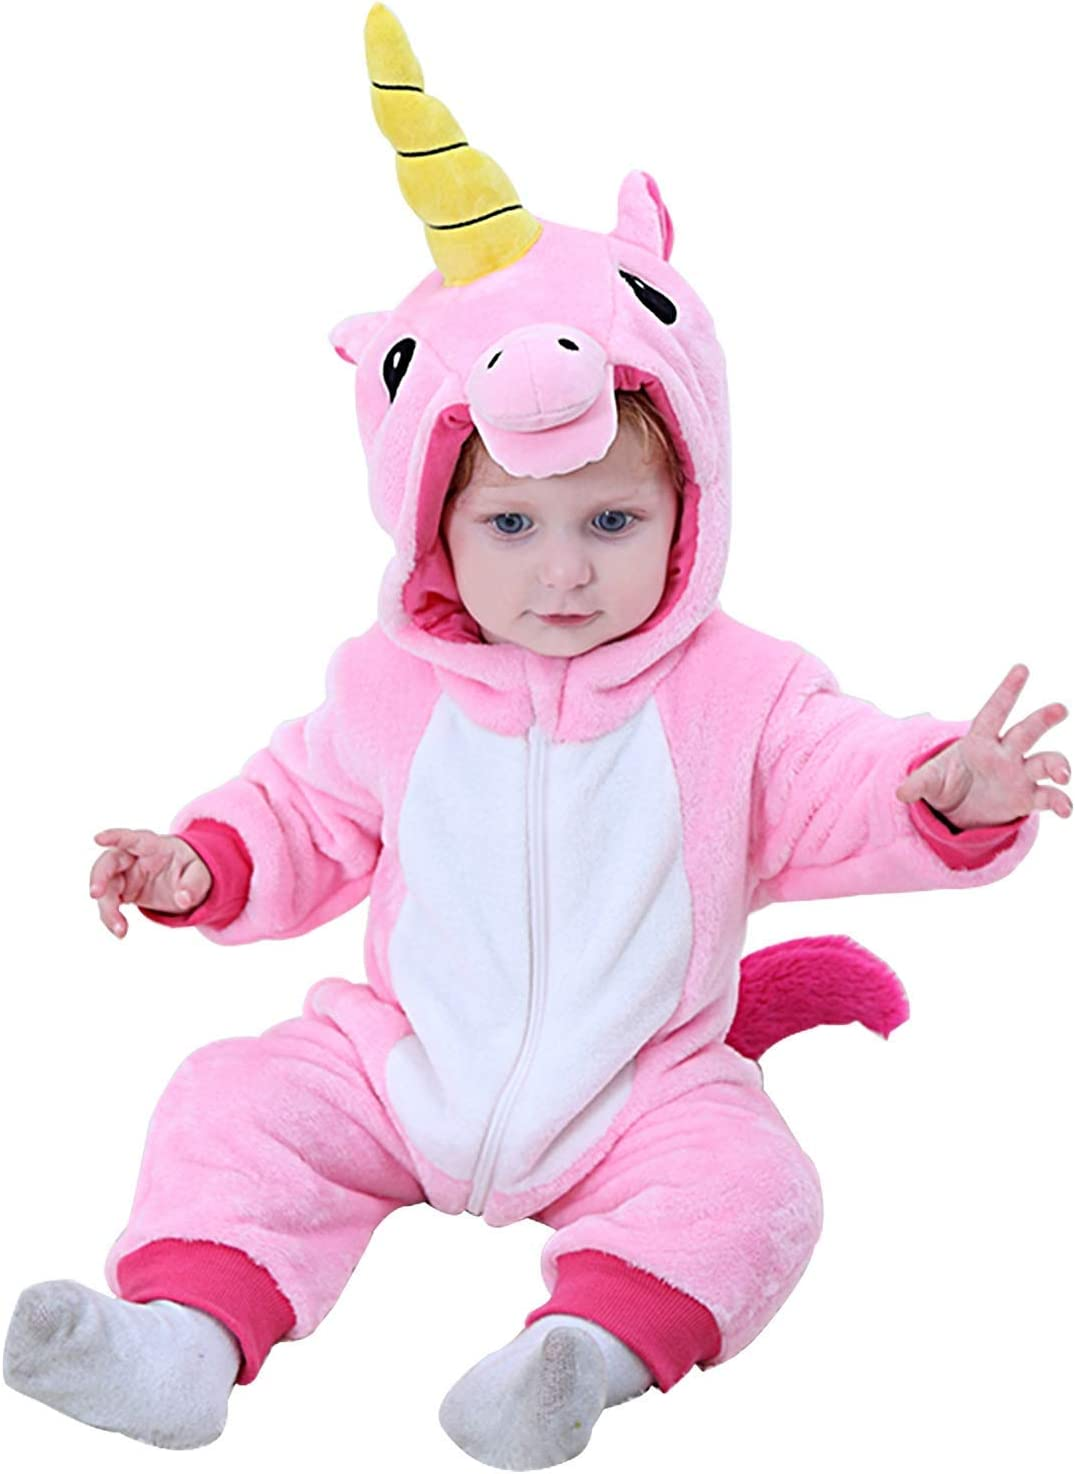 Camlinbo Halloween Costume Baby Infant Lion Cosplay Romper Toddler Wild Animals/' King Dress up Outfit 0-24 Months